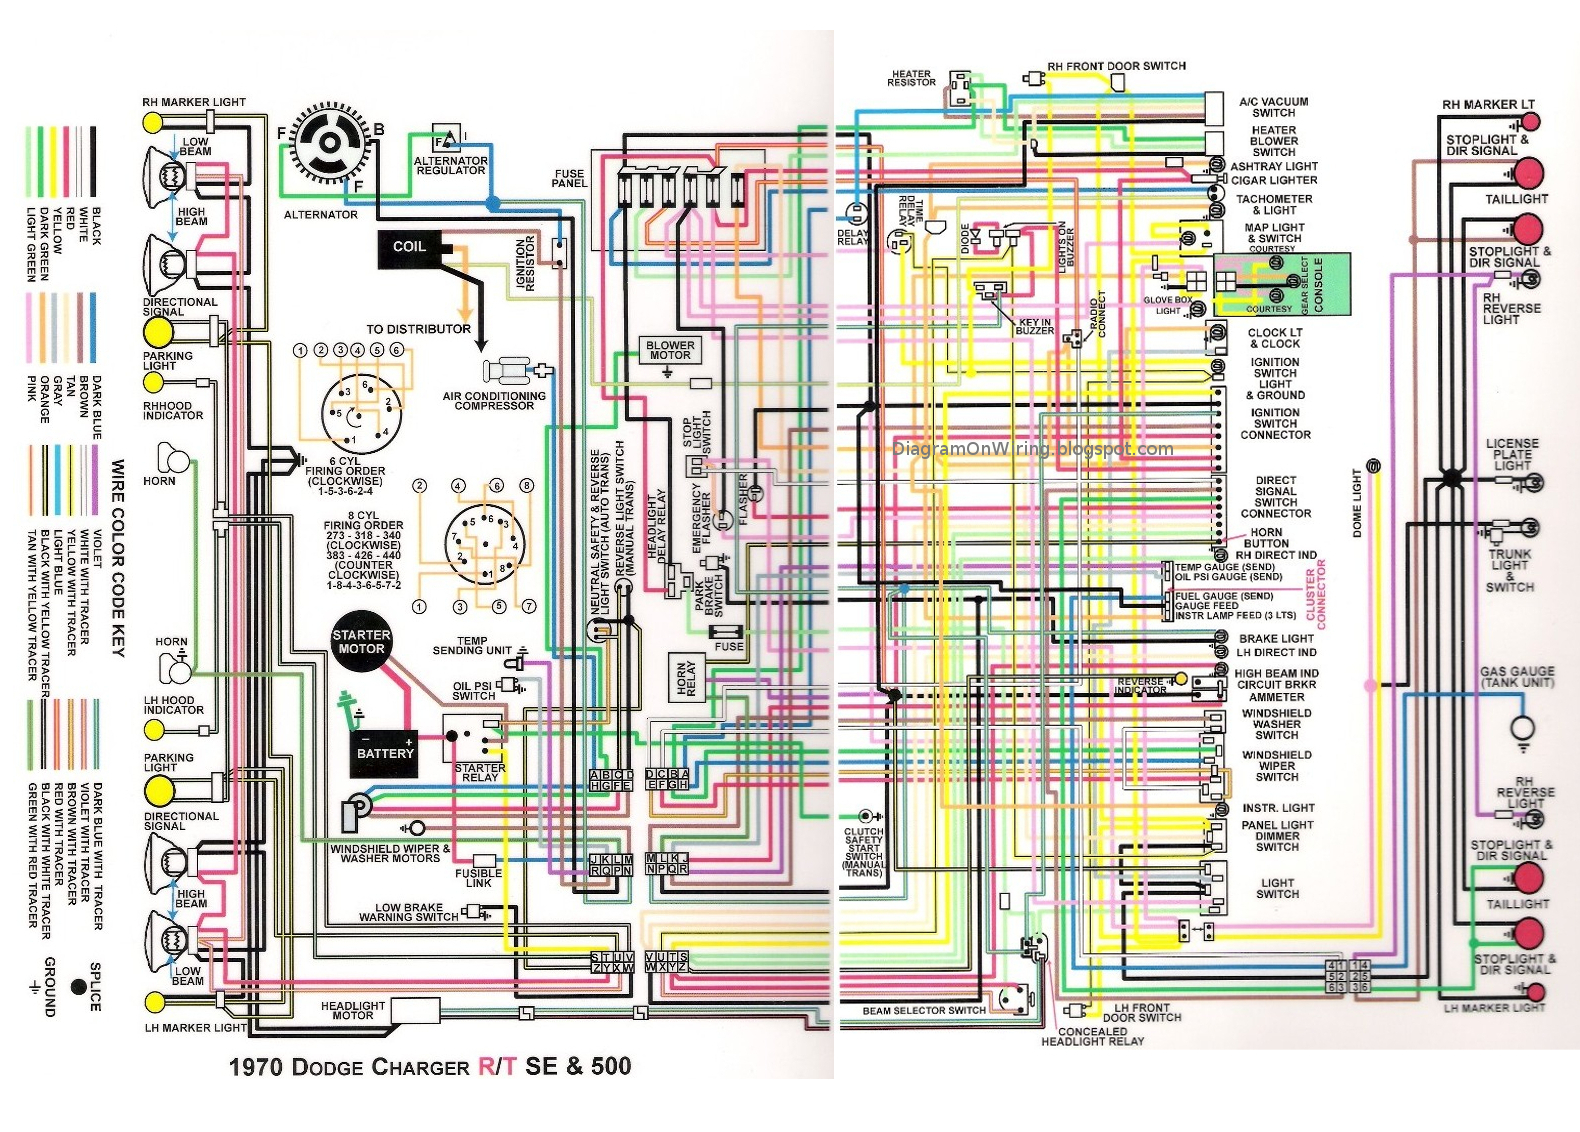 hight resolution of dodge magnum engine diagram wiring library rh 72 csu lichtenhof de 2006 dodge magnum engine 2005 dodge magnum engine hose diagram